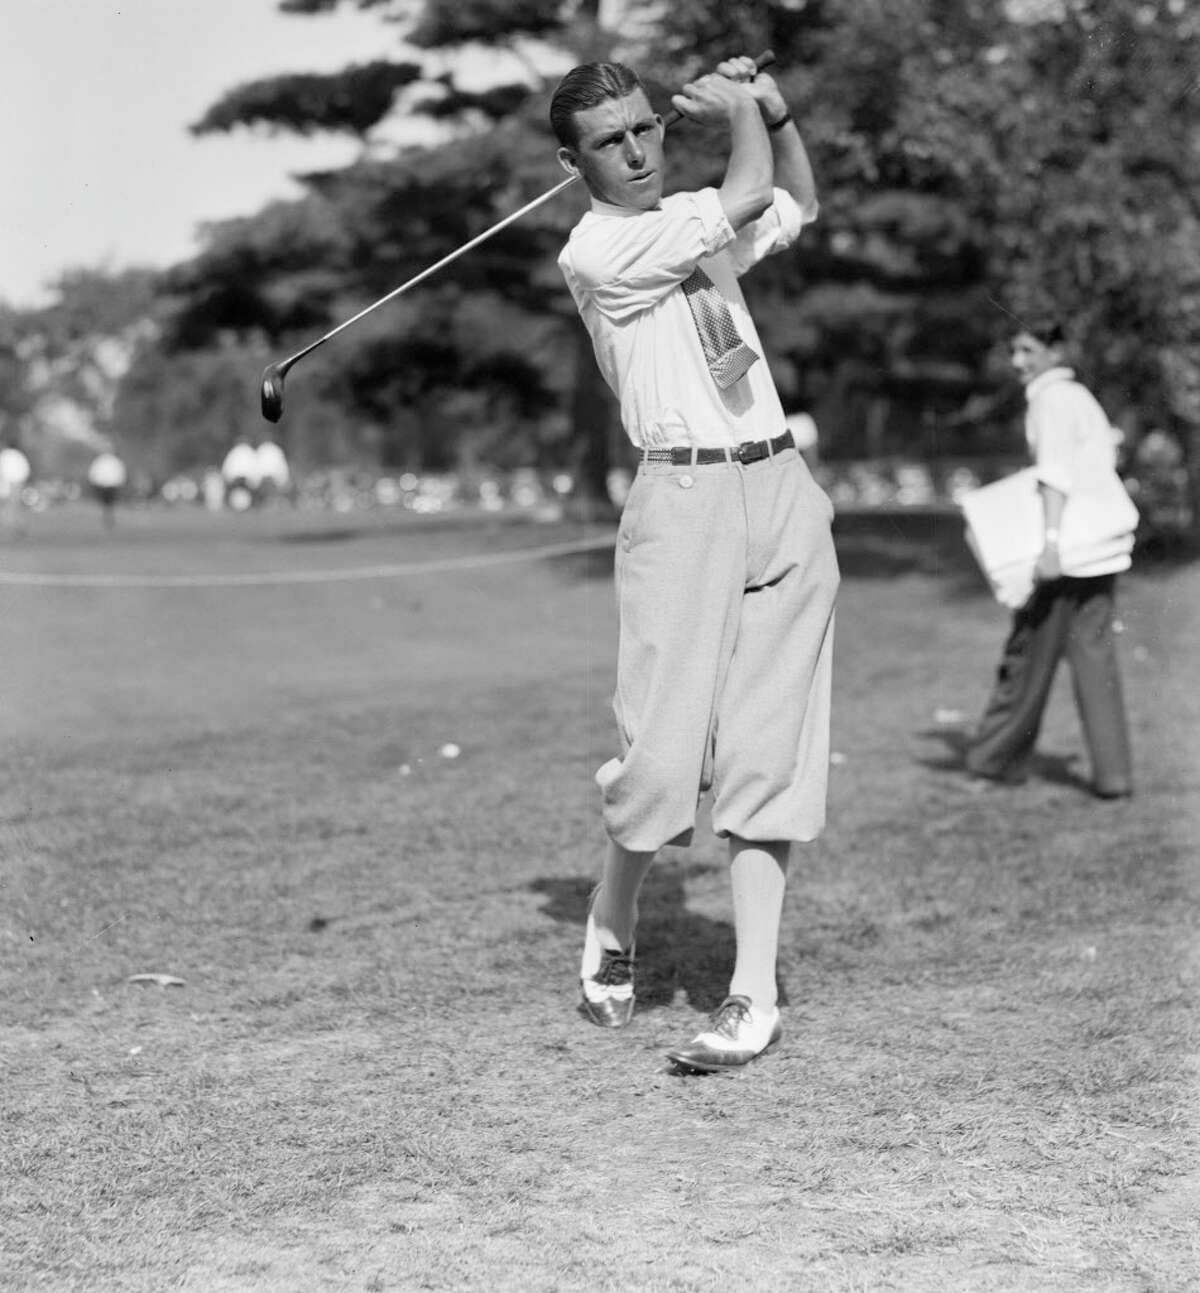 Tom Creavy of Albany drives the ball at the Professional Golfers' Association championship on Sept. 14, 1931. Image by © Bettmann/CORBIS